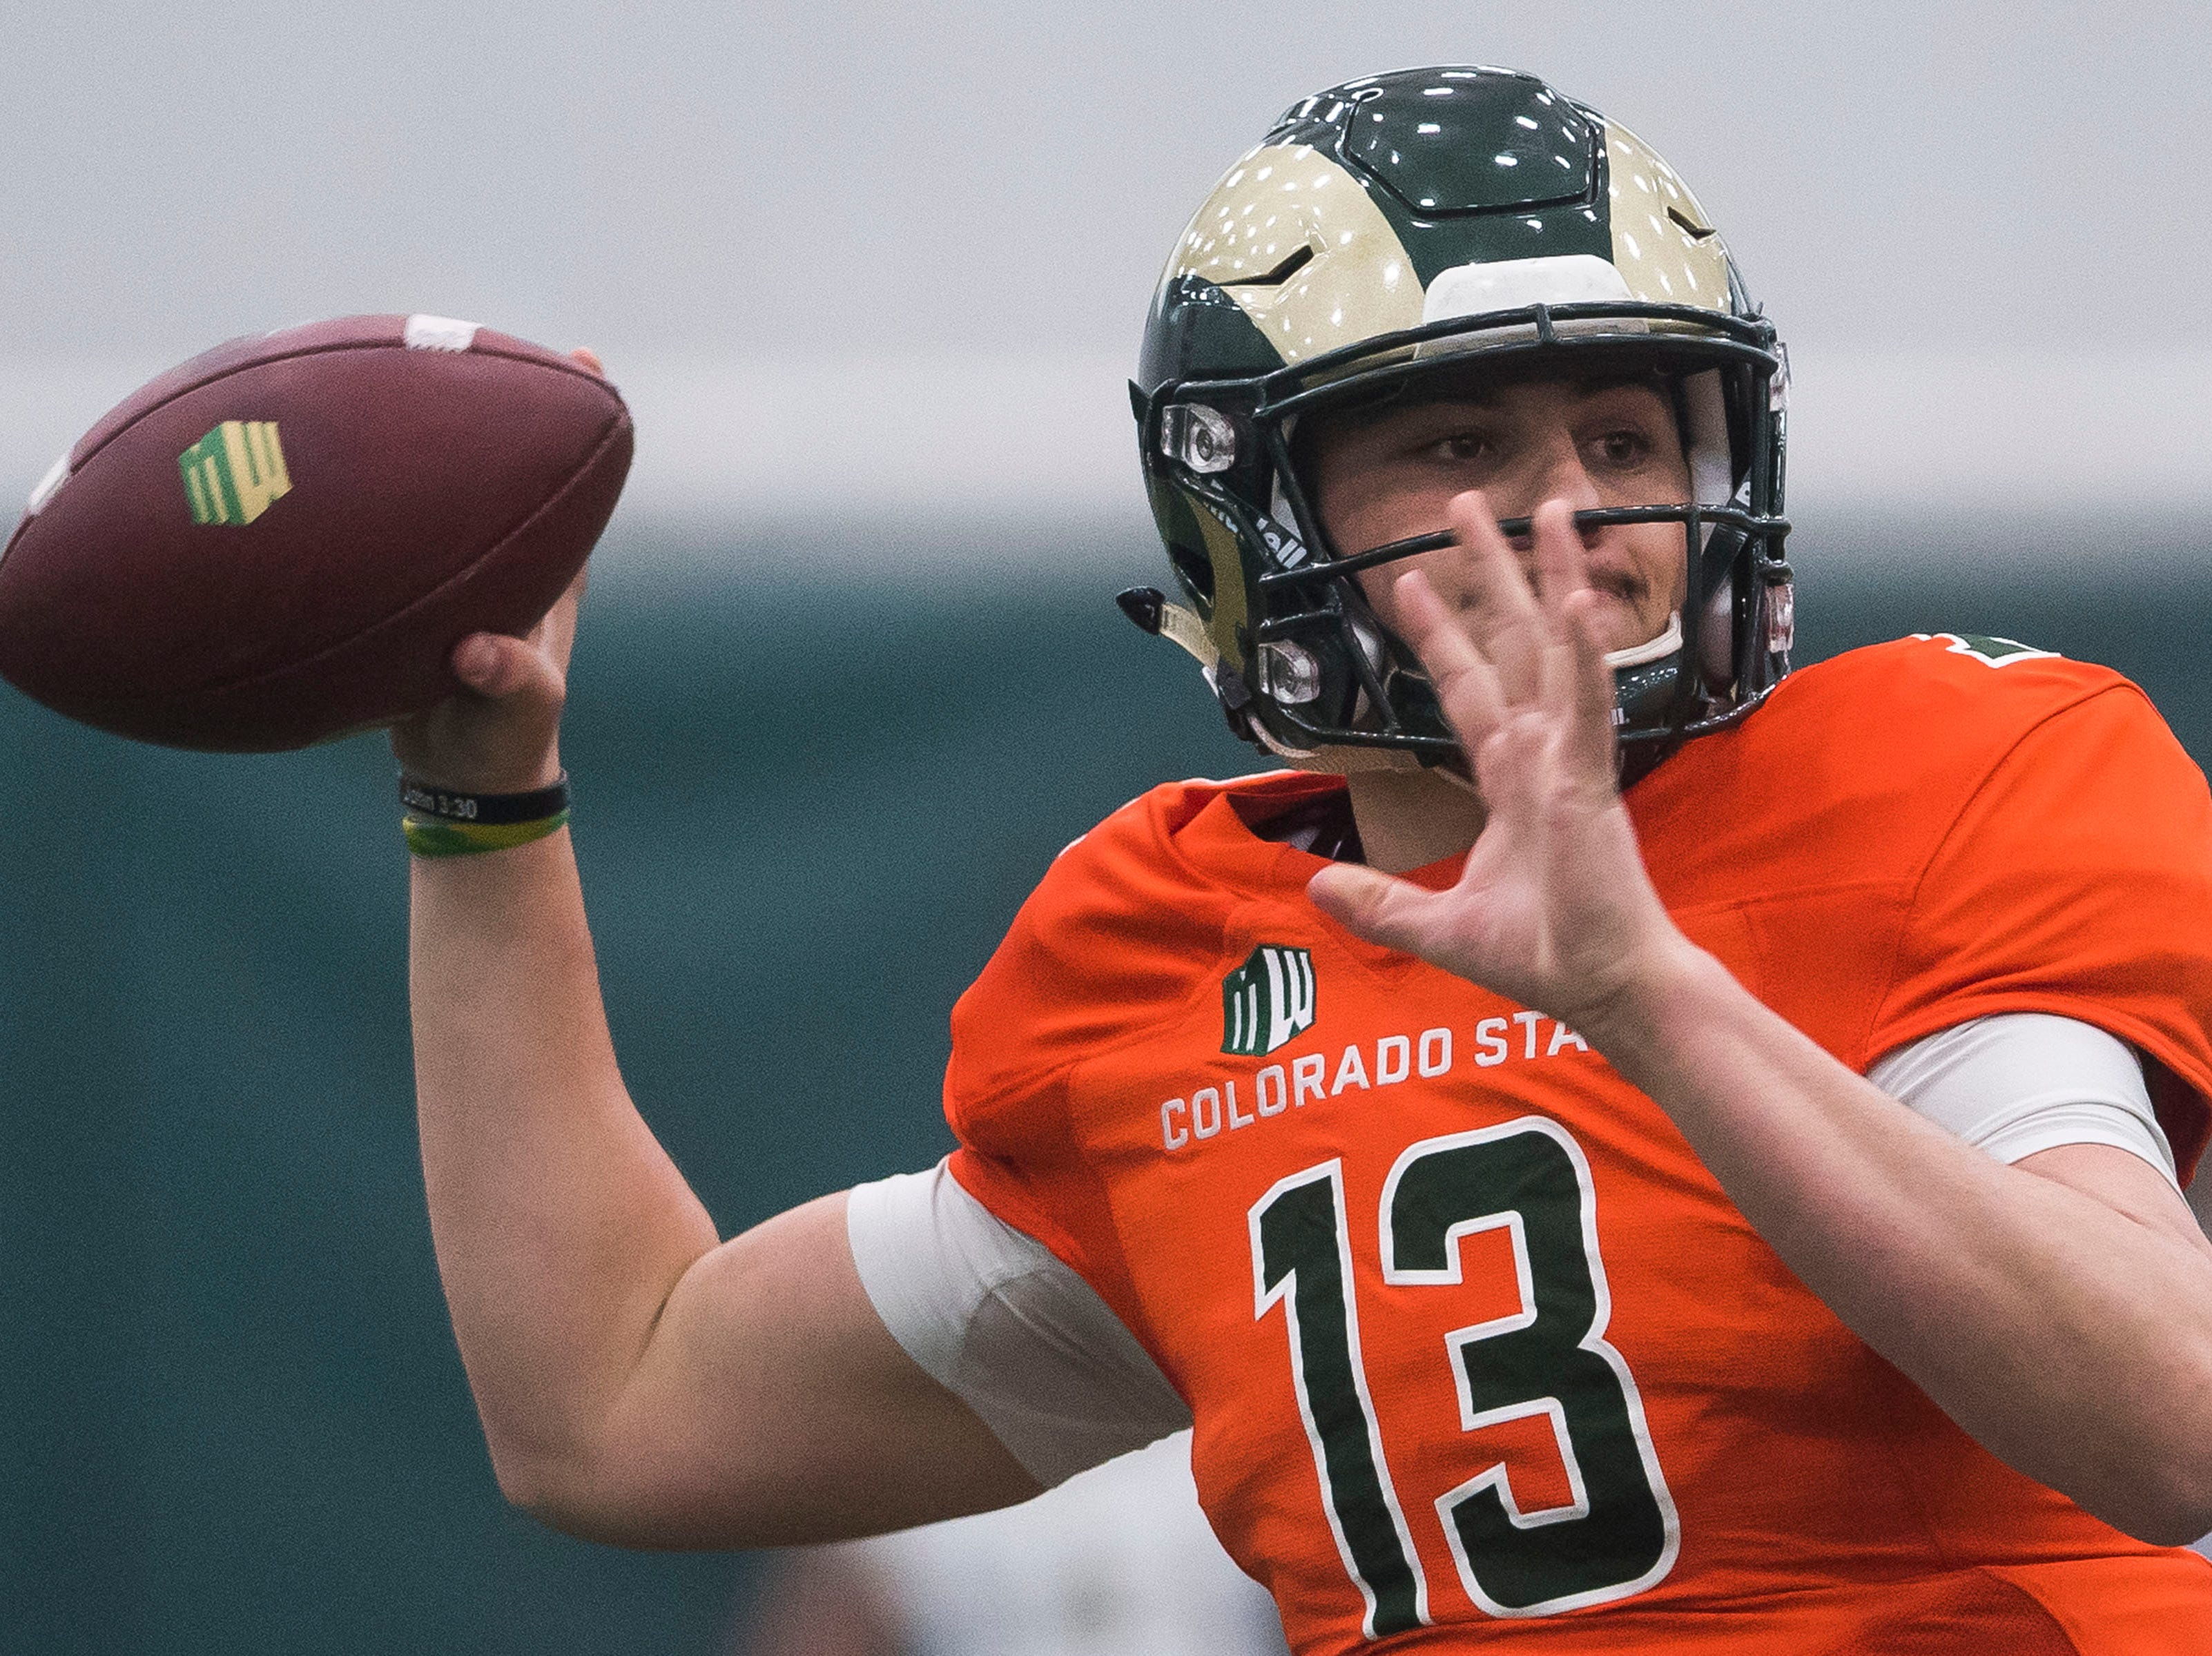 CSU sophomore quarterback Judd Erickson (13) throws during CSU's Spring game on Thursday, March 14, 2019, at their indoor practice facility in Fort Collins, Colo.